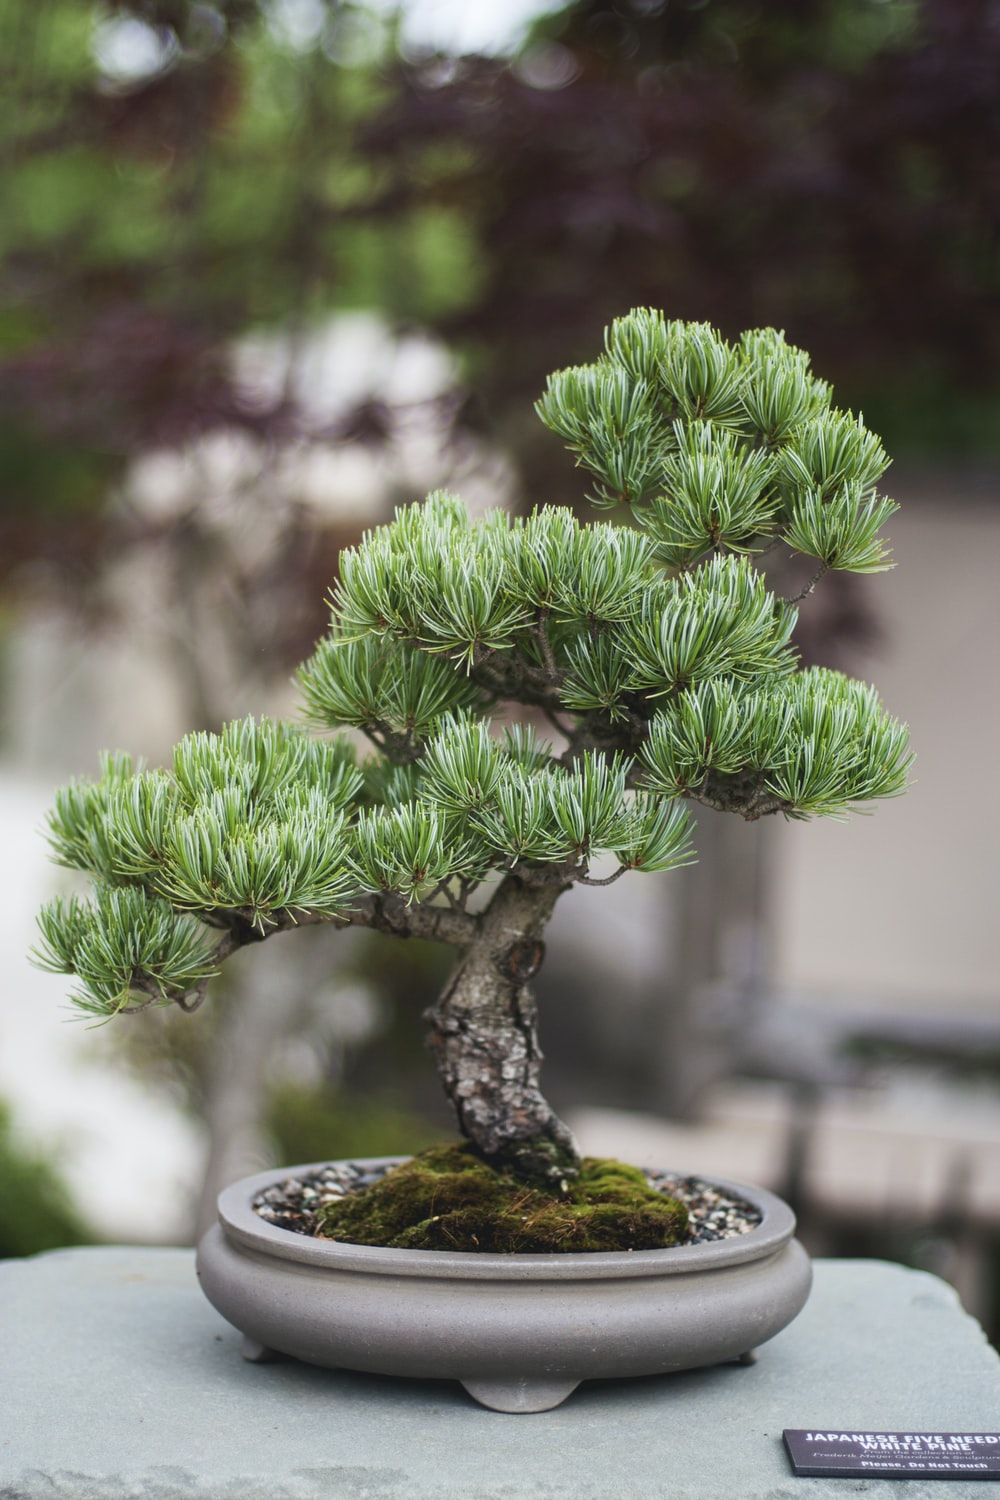 shallow focus photo of bonsai plants